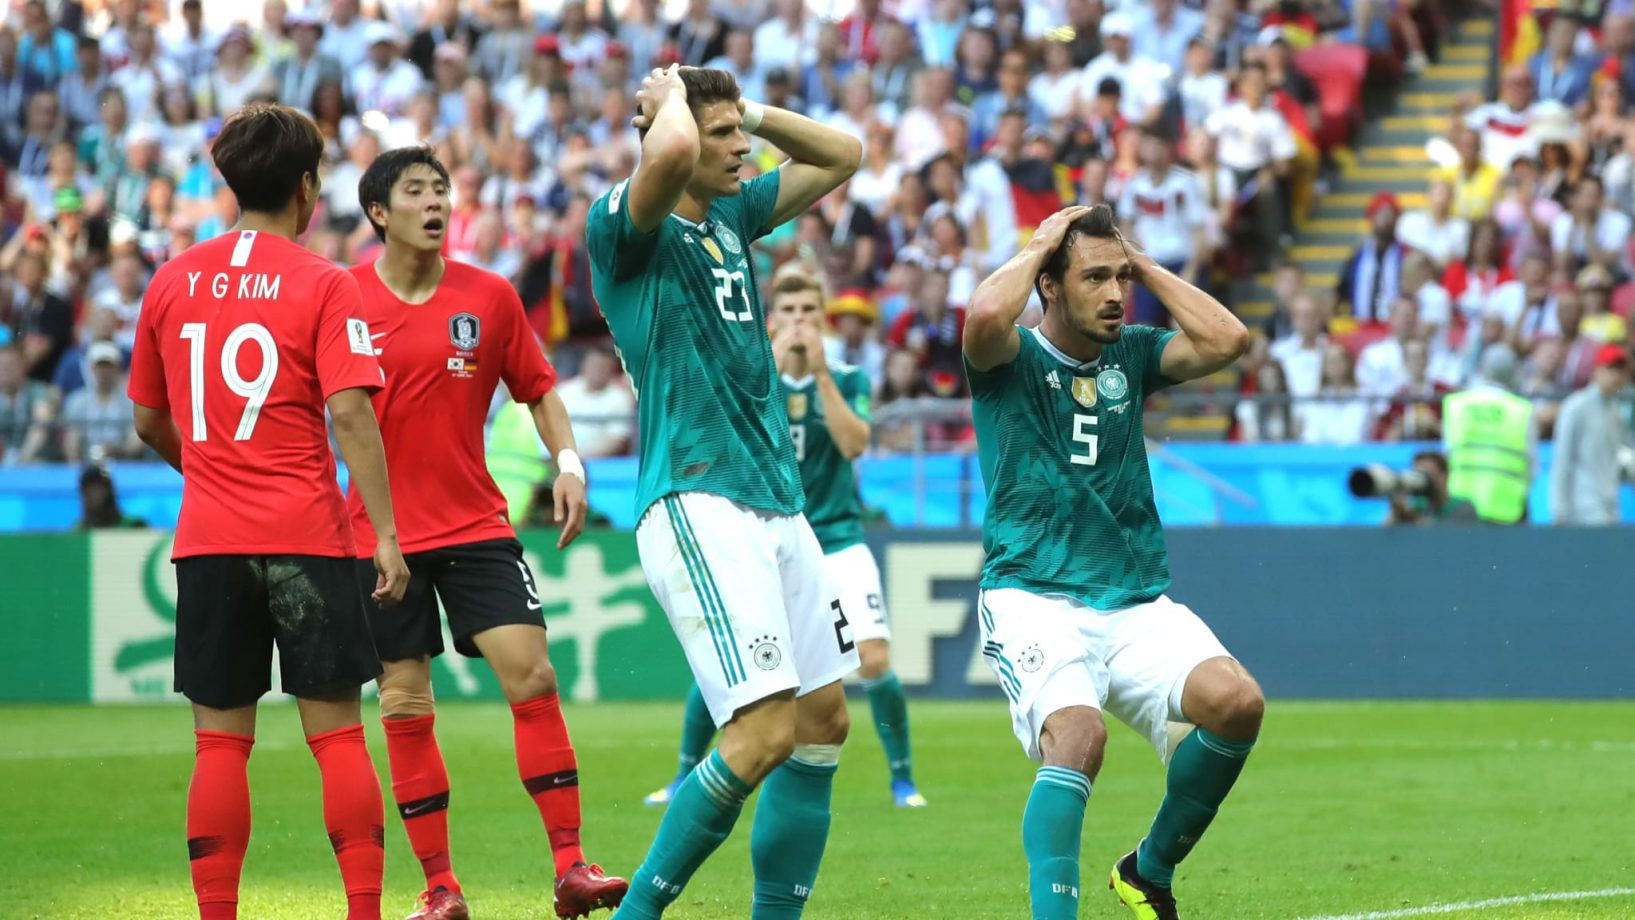 Germany's FIFA World Cup Loss Points Out The Gap In Game Predictions